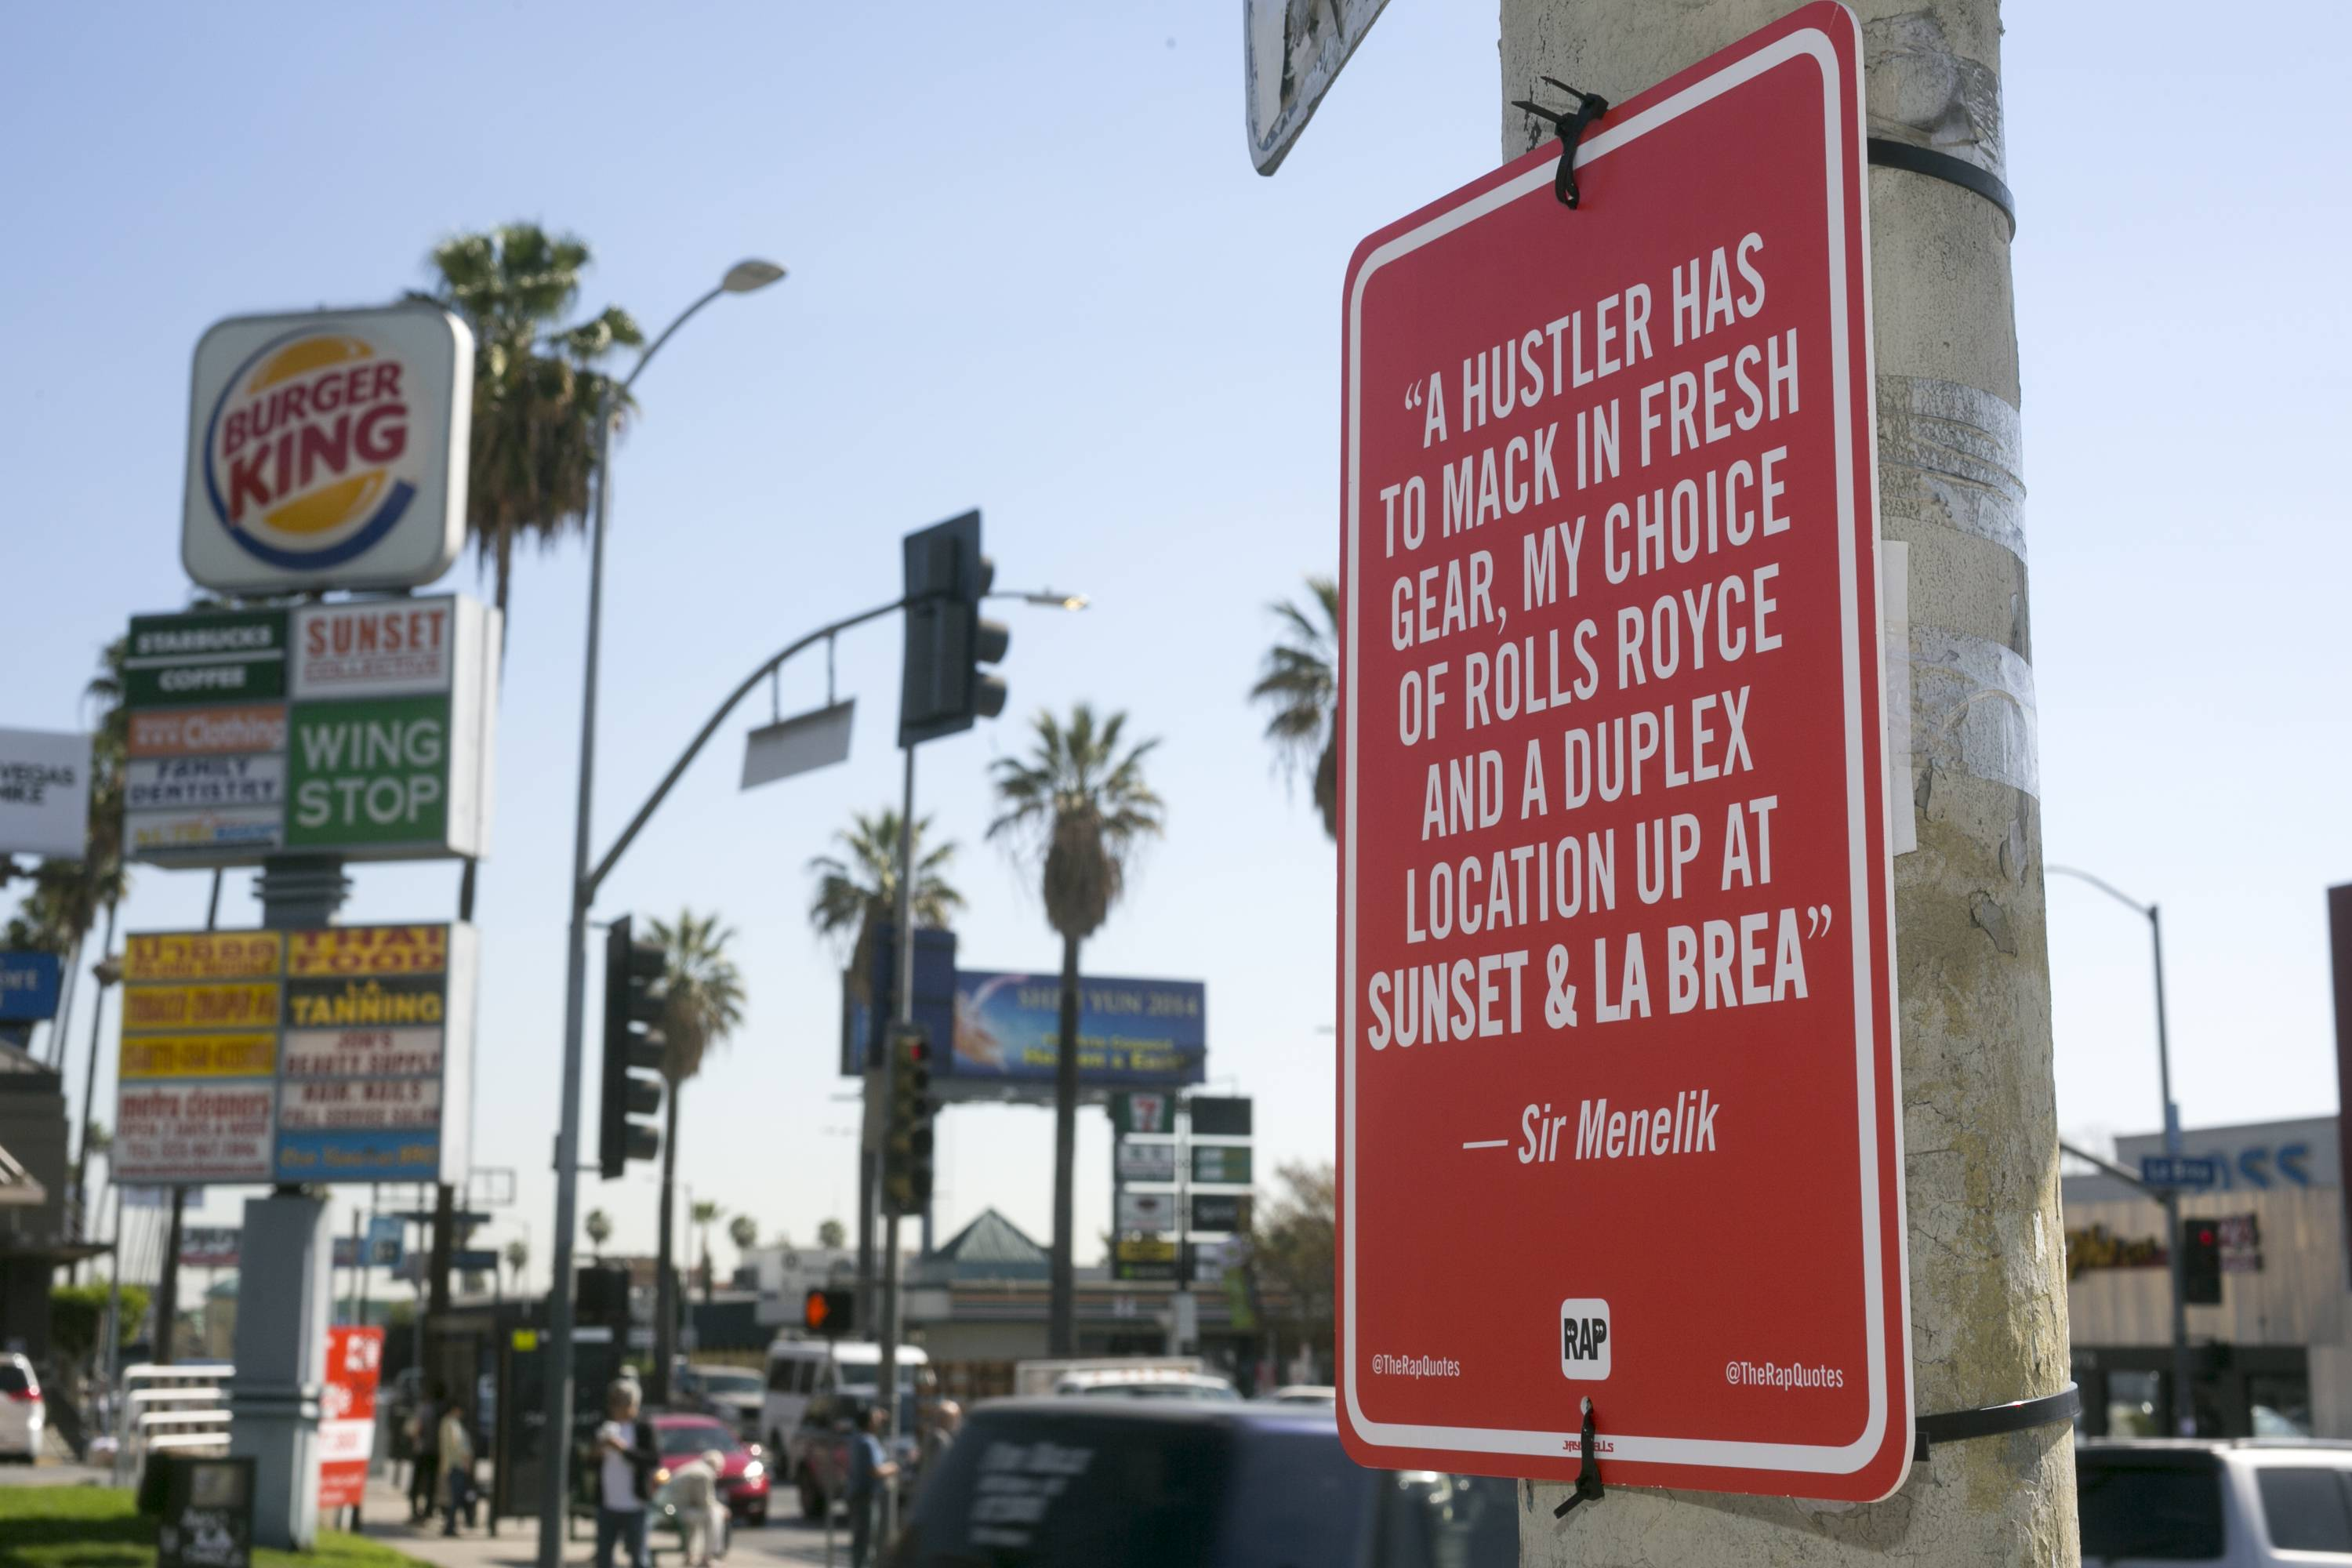 A hip-hop themed banner is on display at the intersection of Sunset Boulevard and La Brea Avenue in Los Angeles. Street artist Jay Shells installed the sign after one day when he caught the name of a nearby intersection cited in a hip-hop song he'd been playing. Shells has put up scores of carefully drawn, hand-screened signs featuring the words of other rappers.